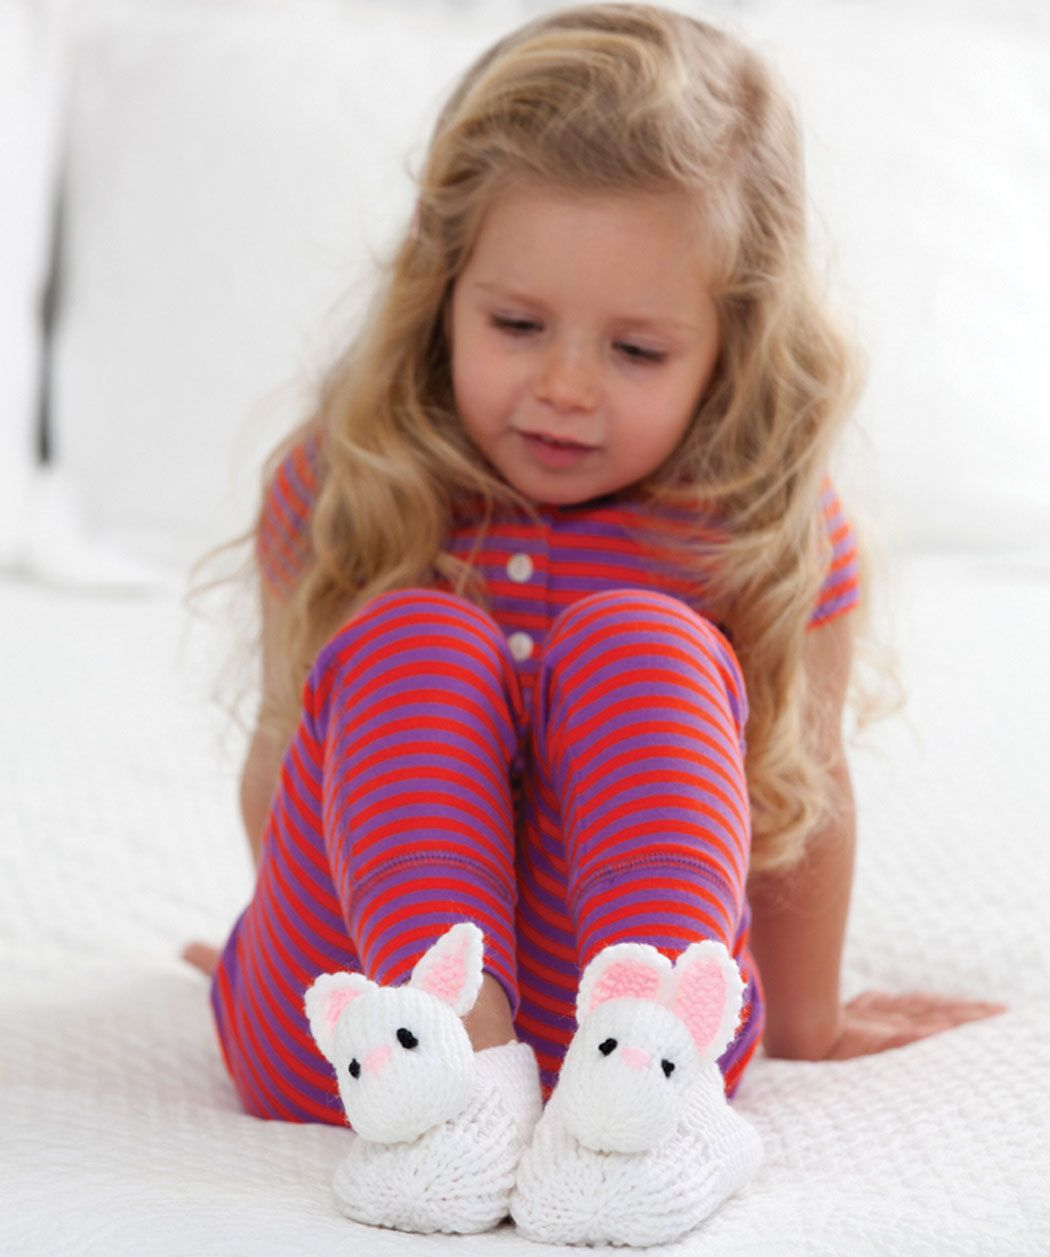 Treat a child to warm feet with these adorable bunny slippers! These ...